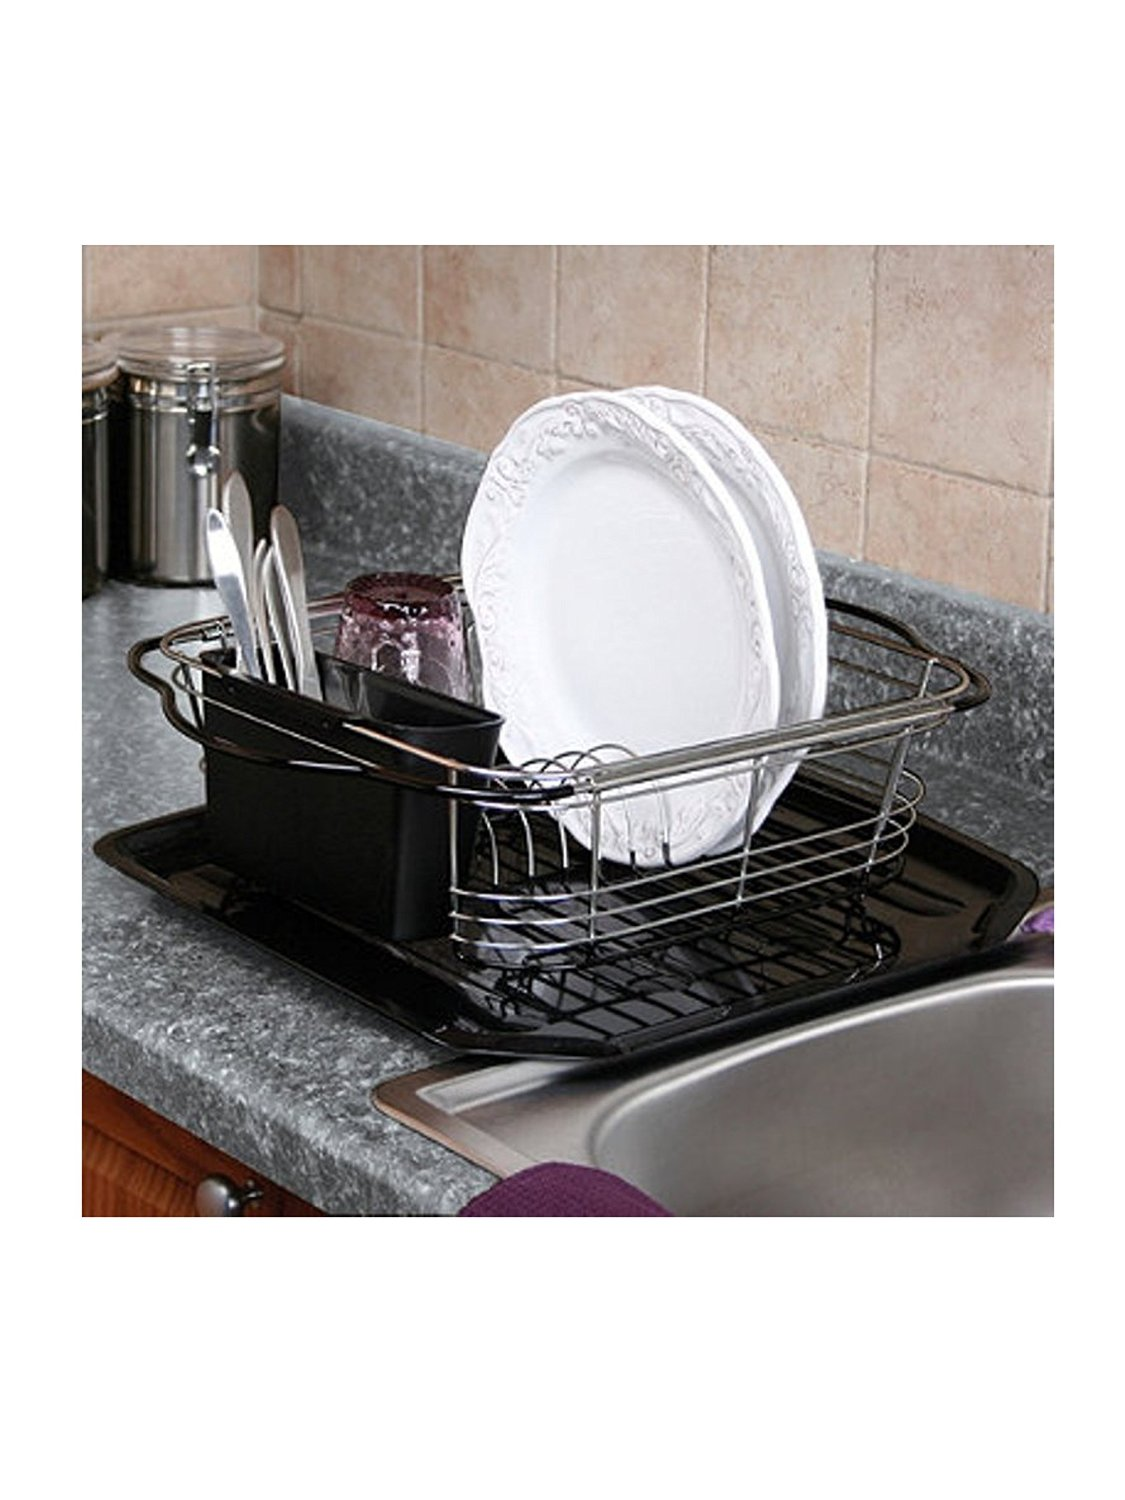 Small Dish Rack Expands For Use On The Counter, In The Sink Or Over The Sink .